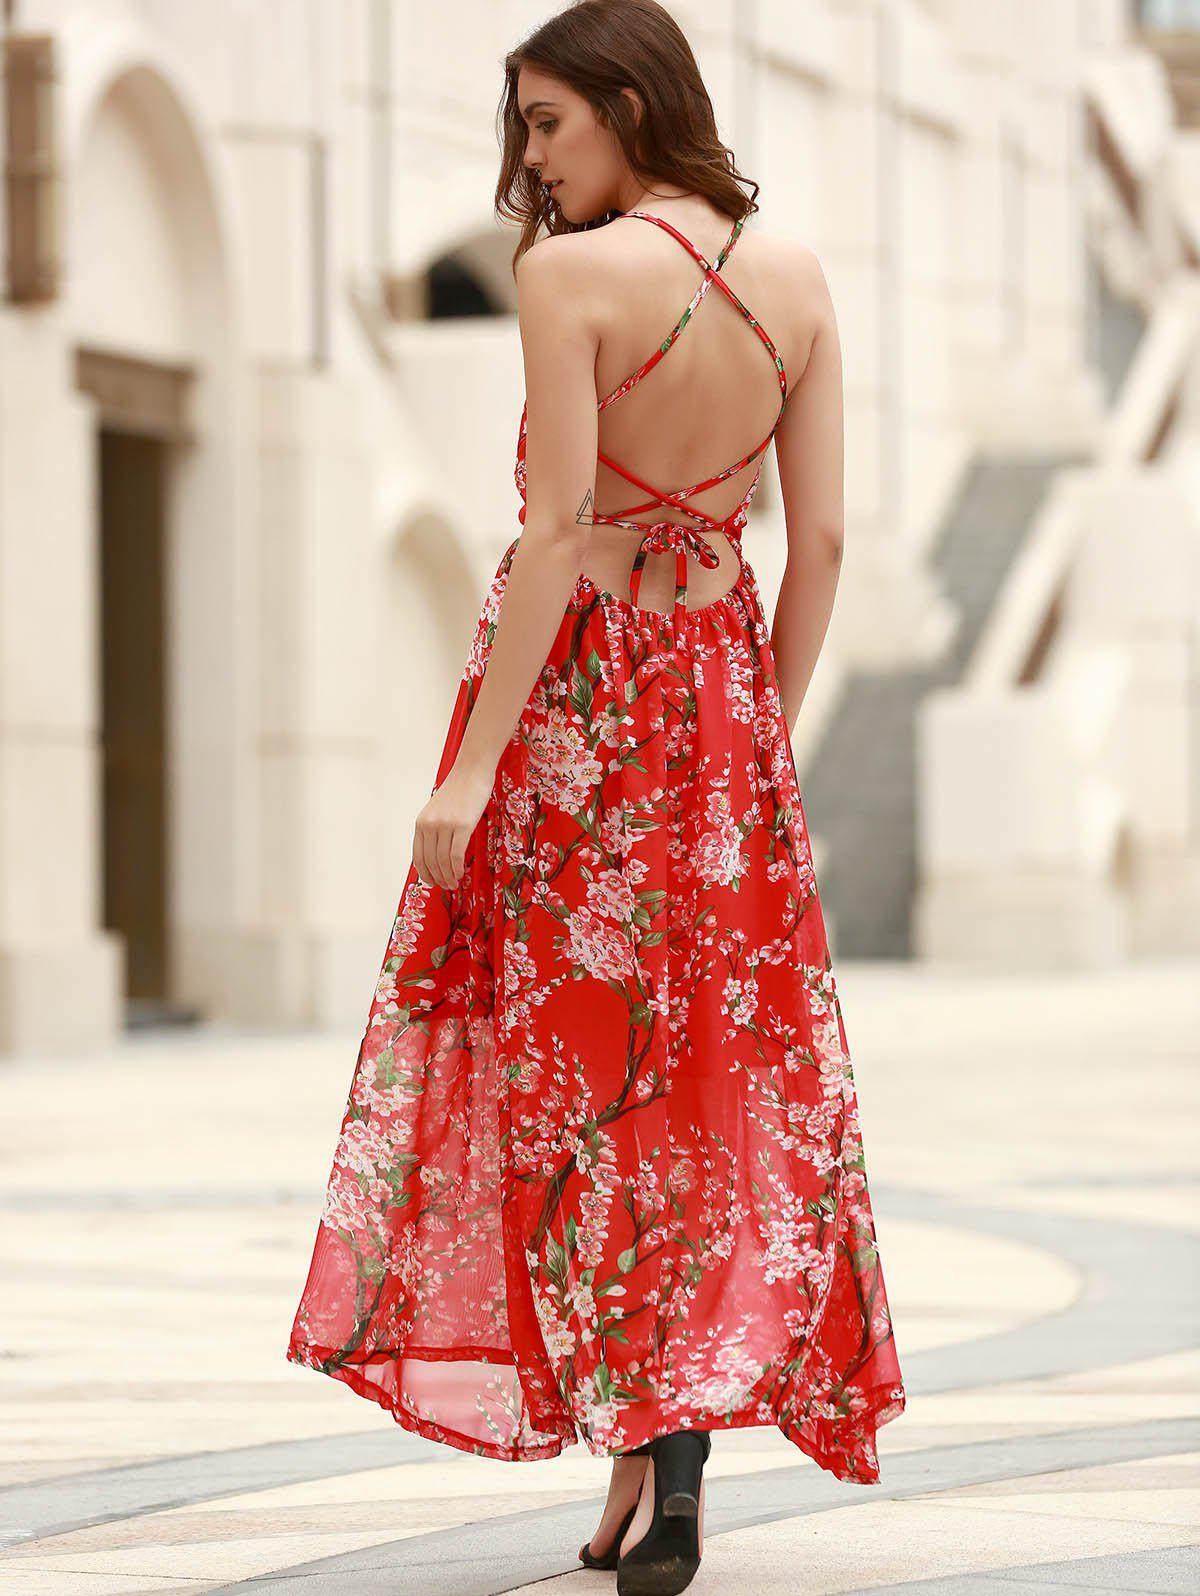 Bohemian Floral Print Spaghetti Strap Criss-Cross Women's Chiffon Dress - ONE SIZE(FIT SIZE XS TO M) RED